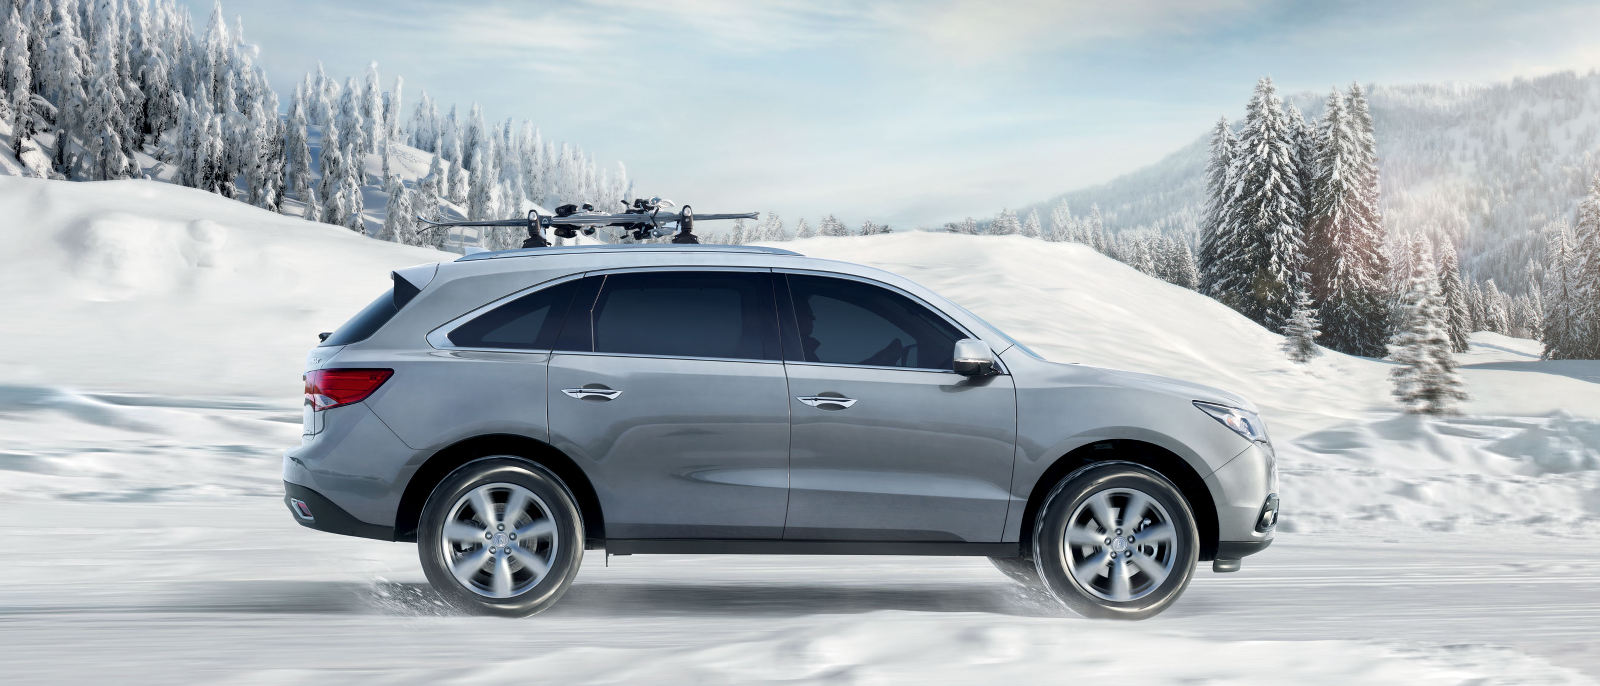 2015 Acura MDX driving on snow